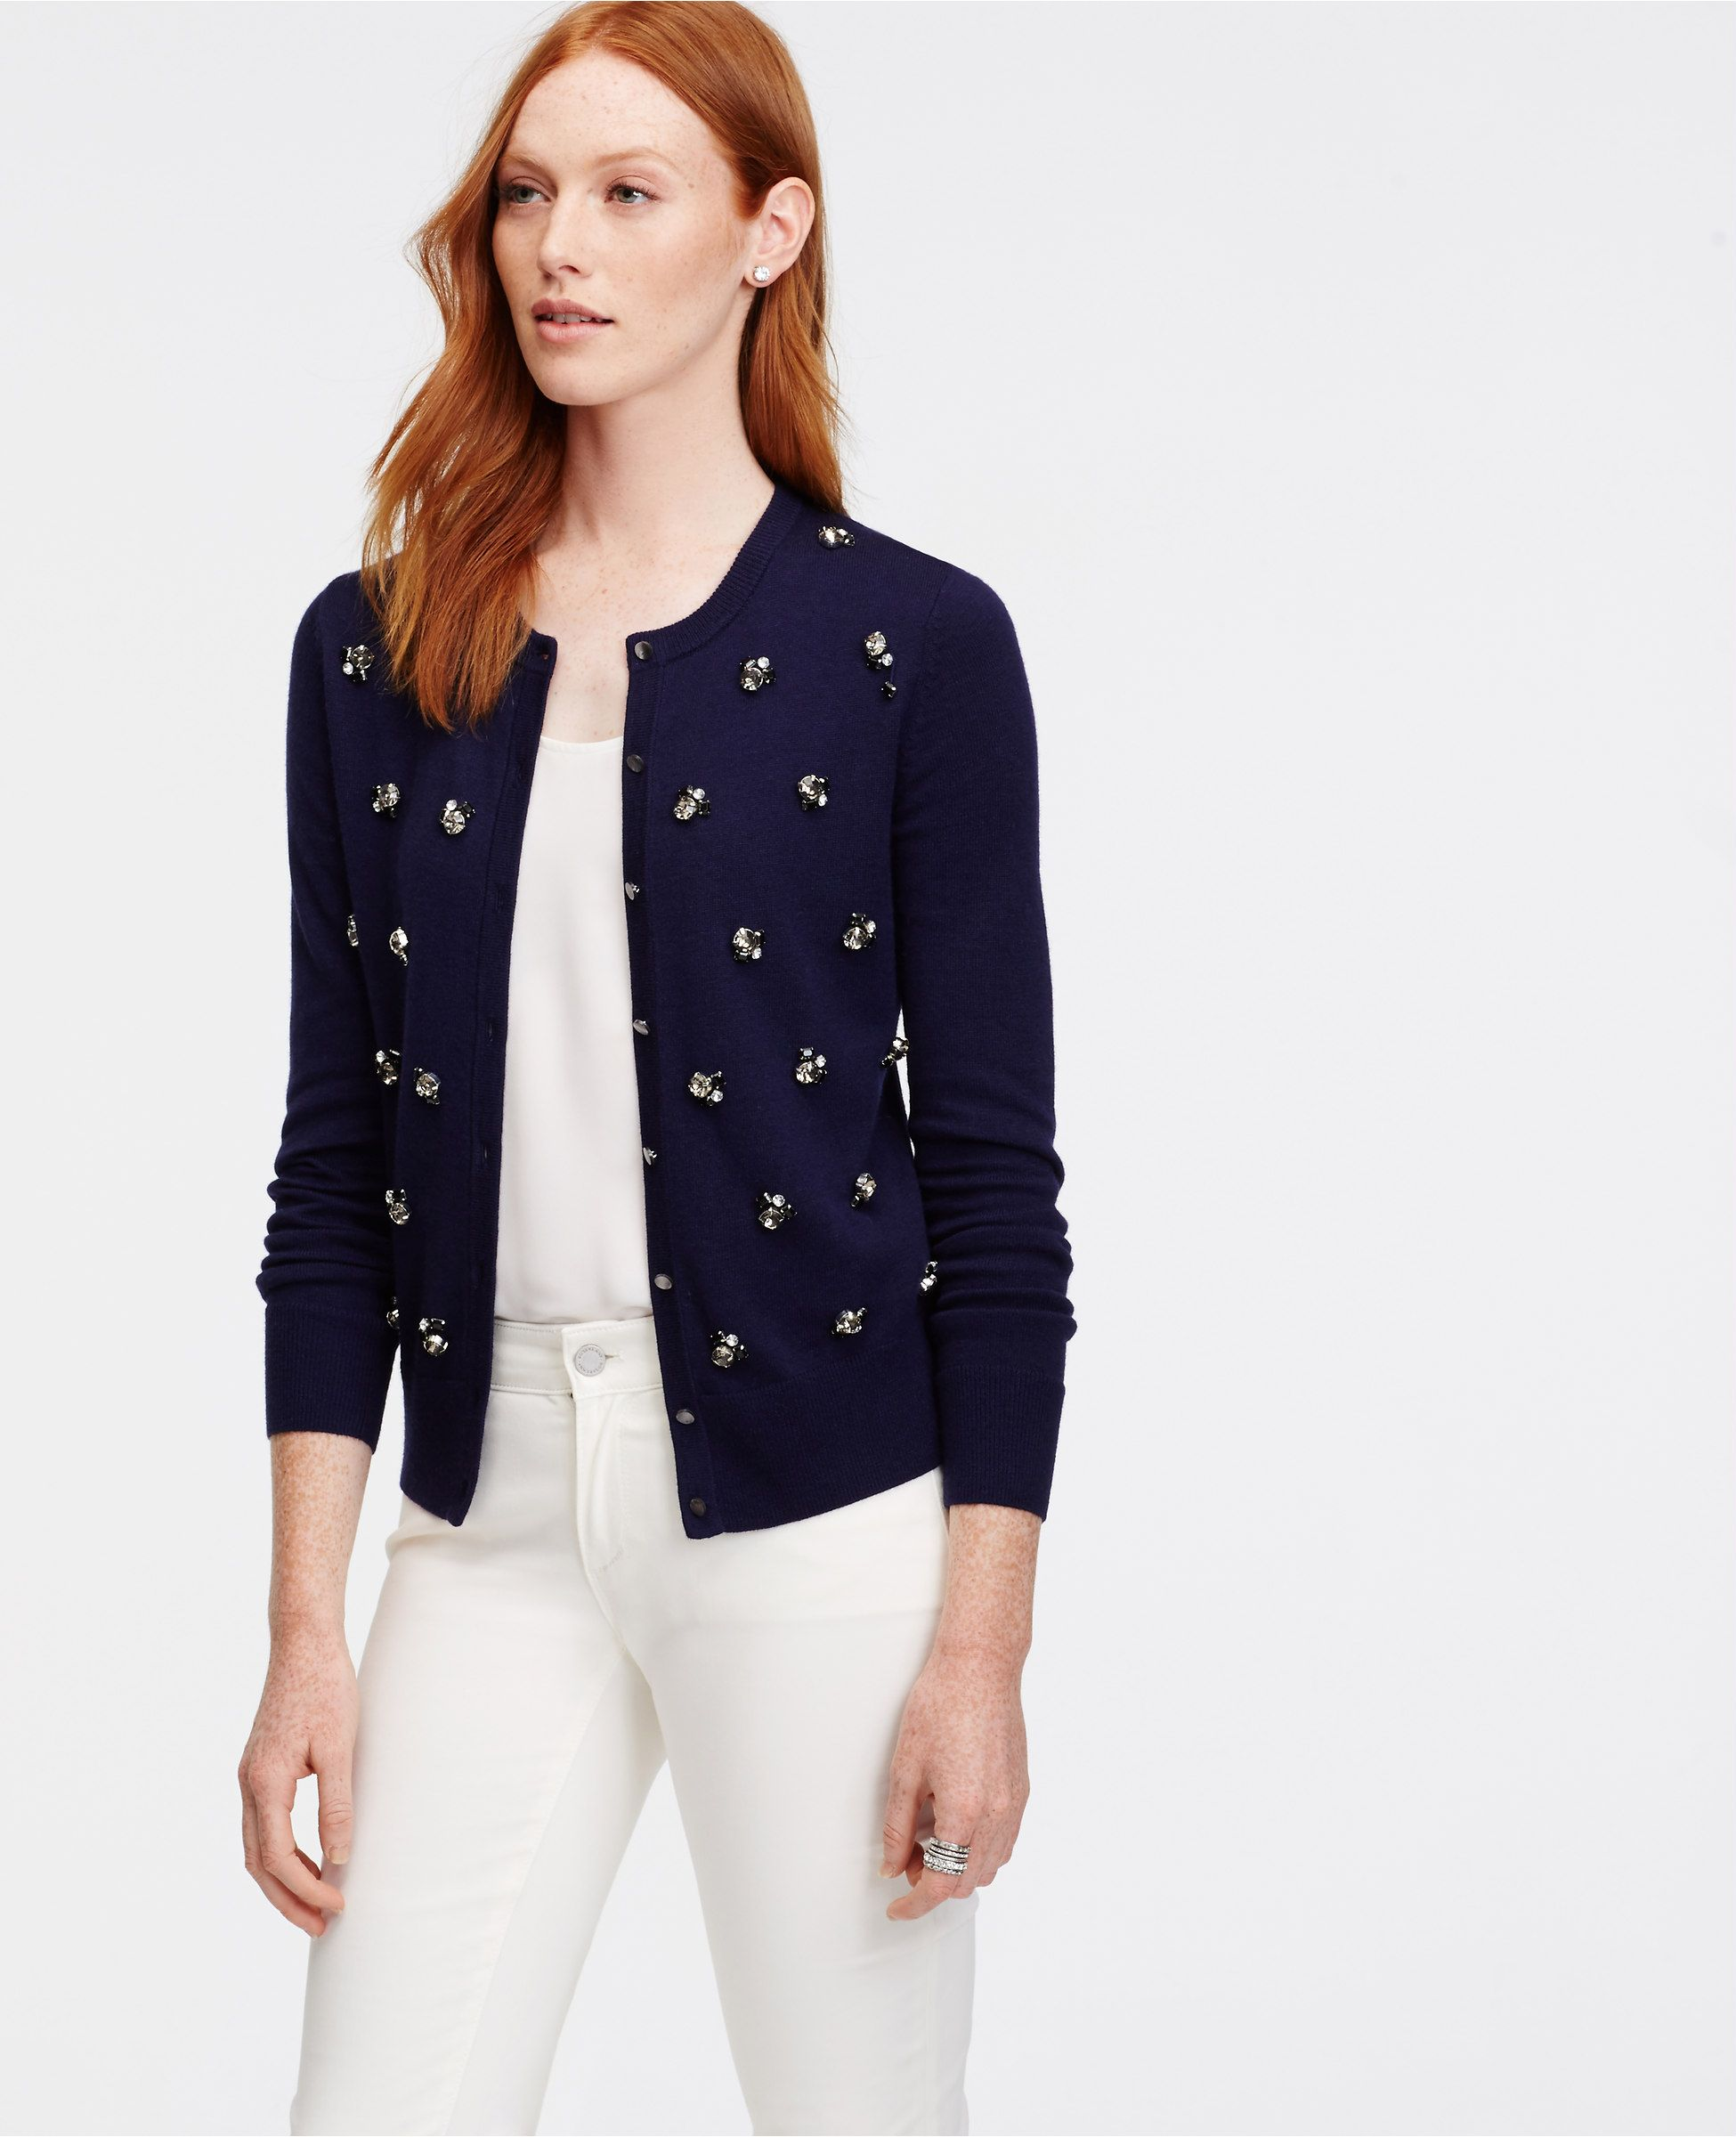 Bejeweled Ann Cardigan   Ann Taylor   Sweaters, Clothes